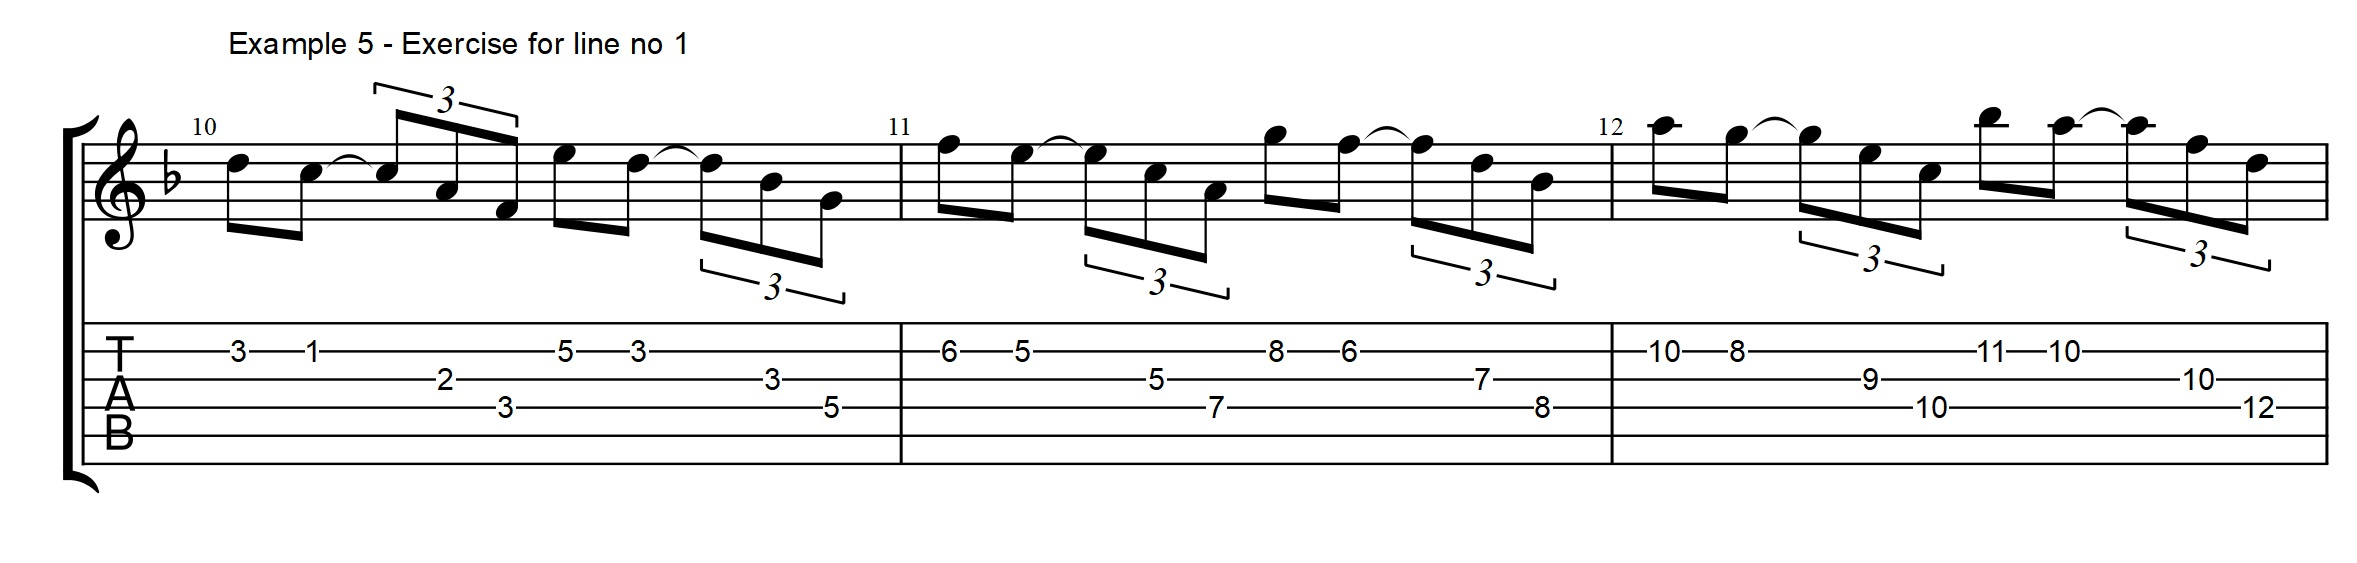 Rhythm archives jens larsen as you can see i am using sweep or economy picking to play the arpeggios on the gm7 if you want to practice this you can use the exercise shown here below hexwebz Gallery